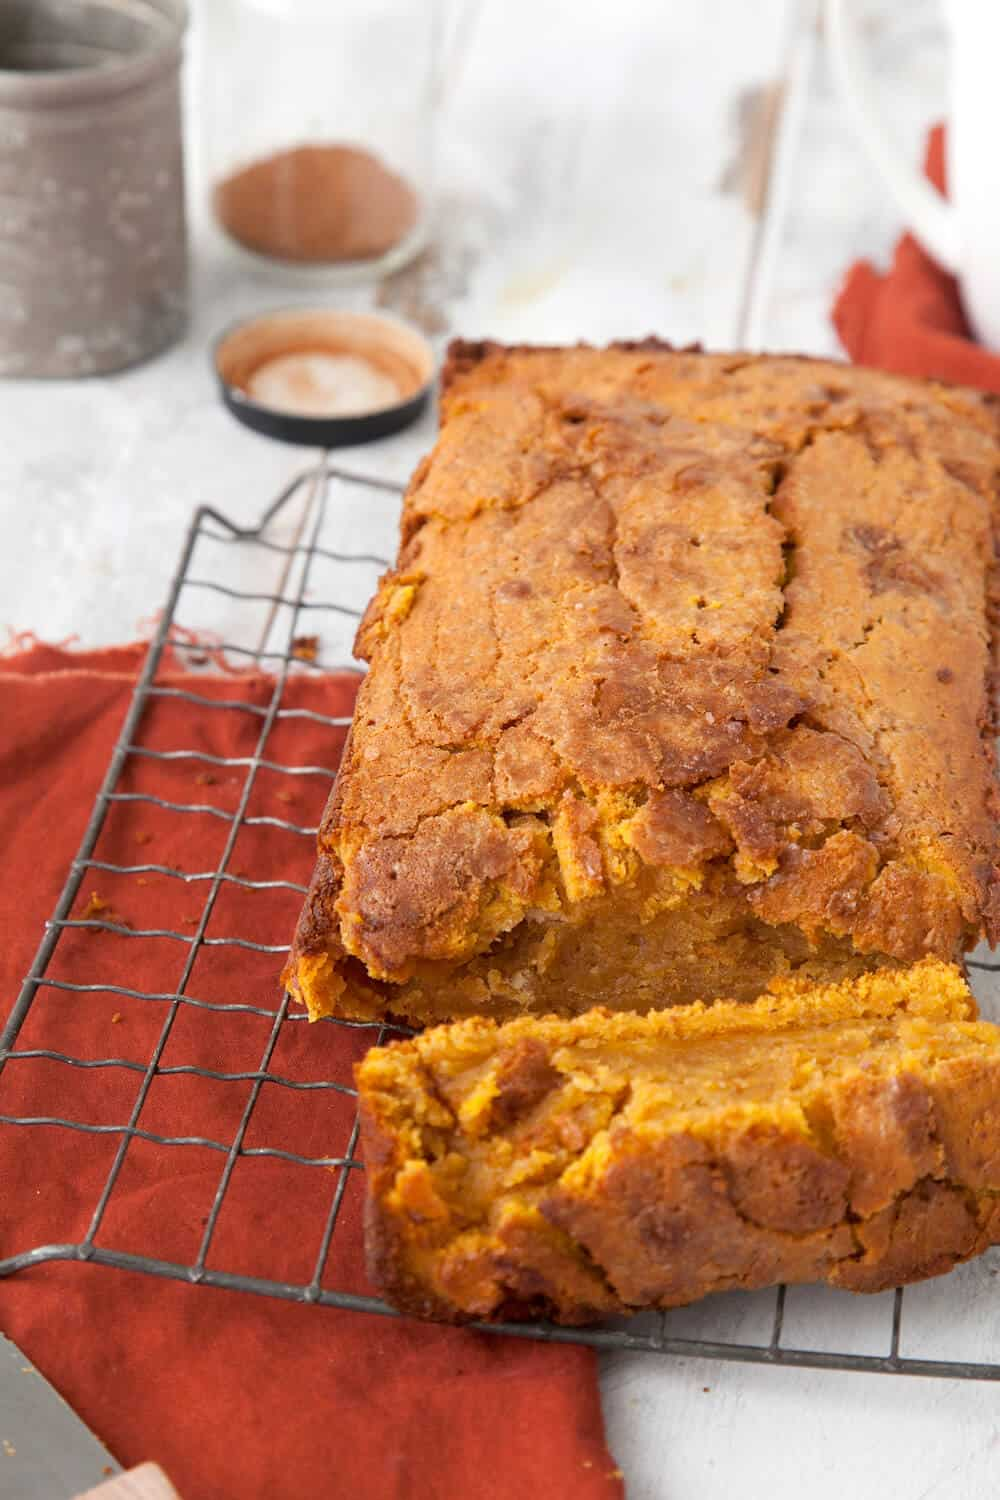 Nothing says holiday baking quite like pumpkin pie bread! This delicious, moist bread is perfect with whipped cream or cream cheese frosting.